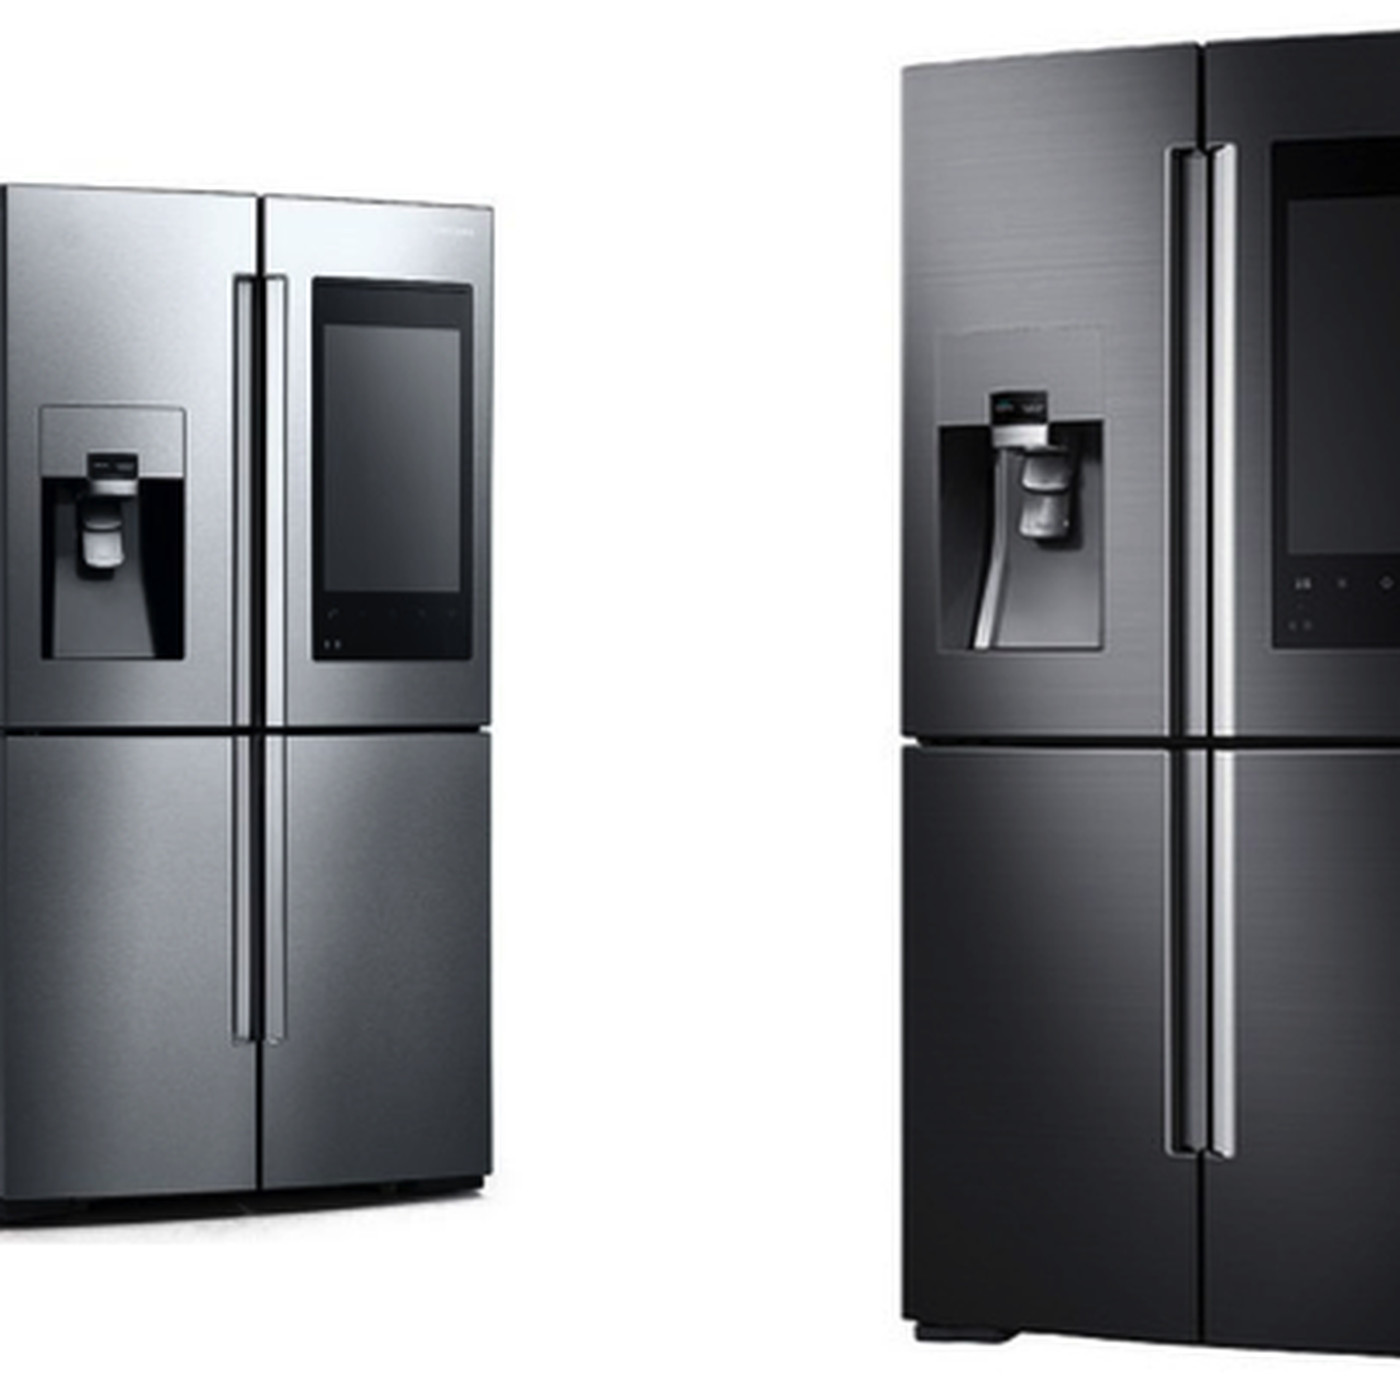 Samsung S New Fridge Can Order Fresh Direct Groceries From Its Humongous Touchscreen The Verge